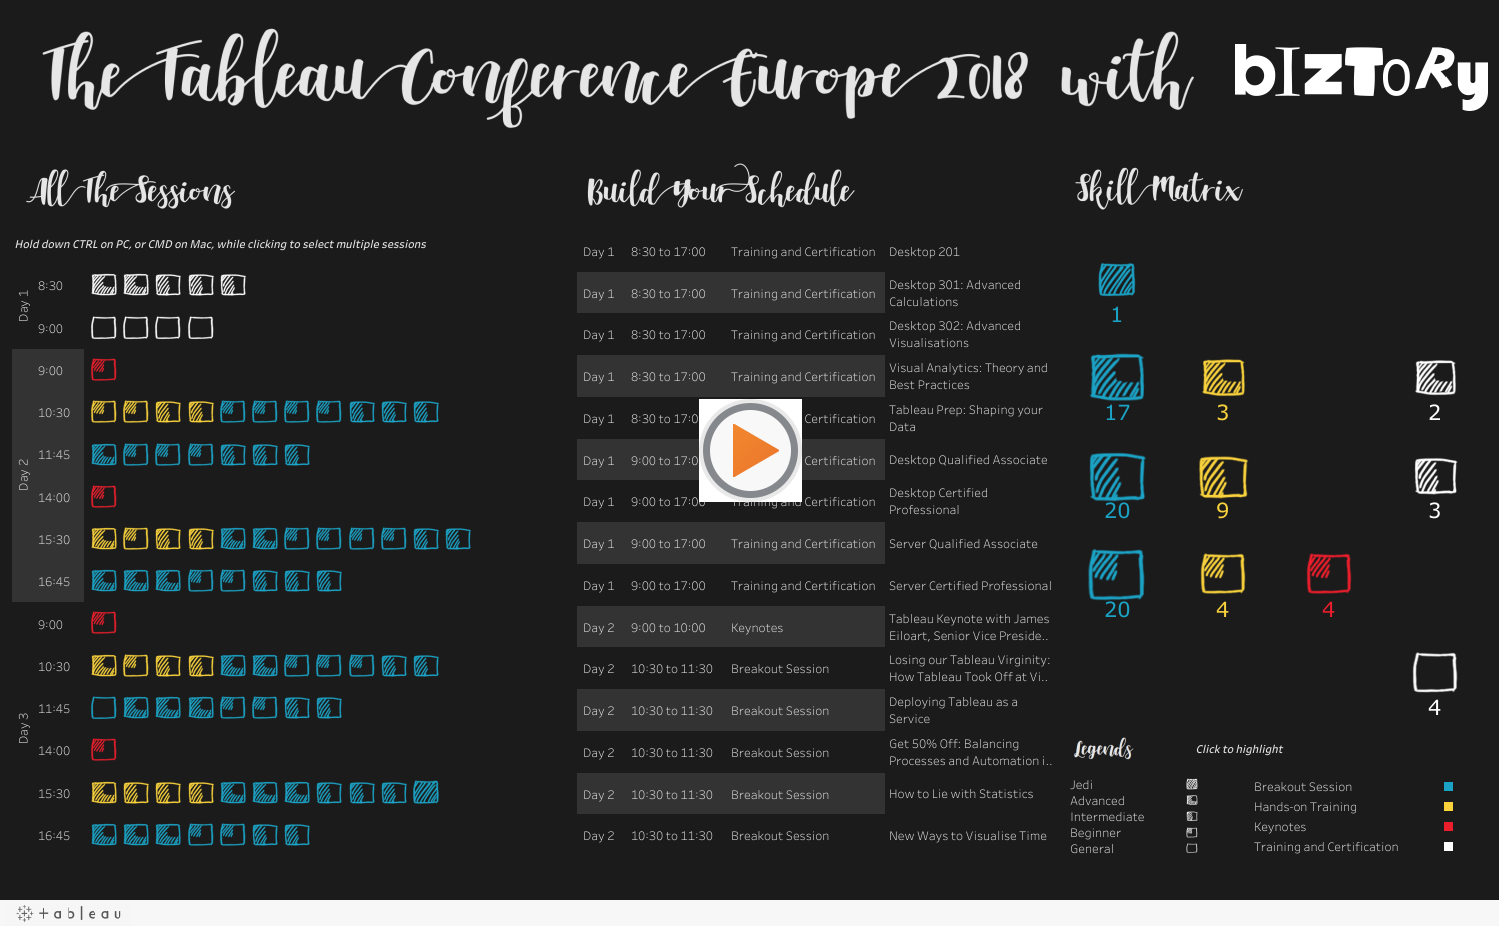 Tableau Conference Europe 2018Mobile